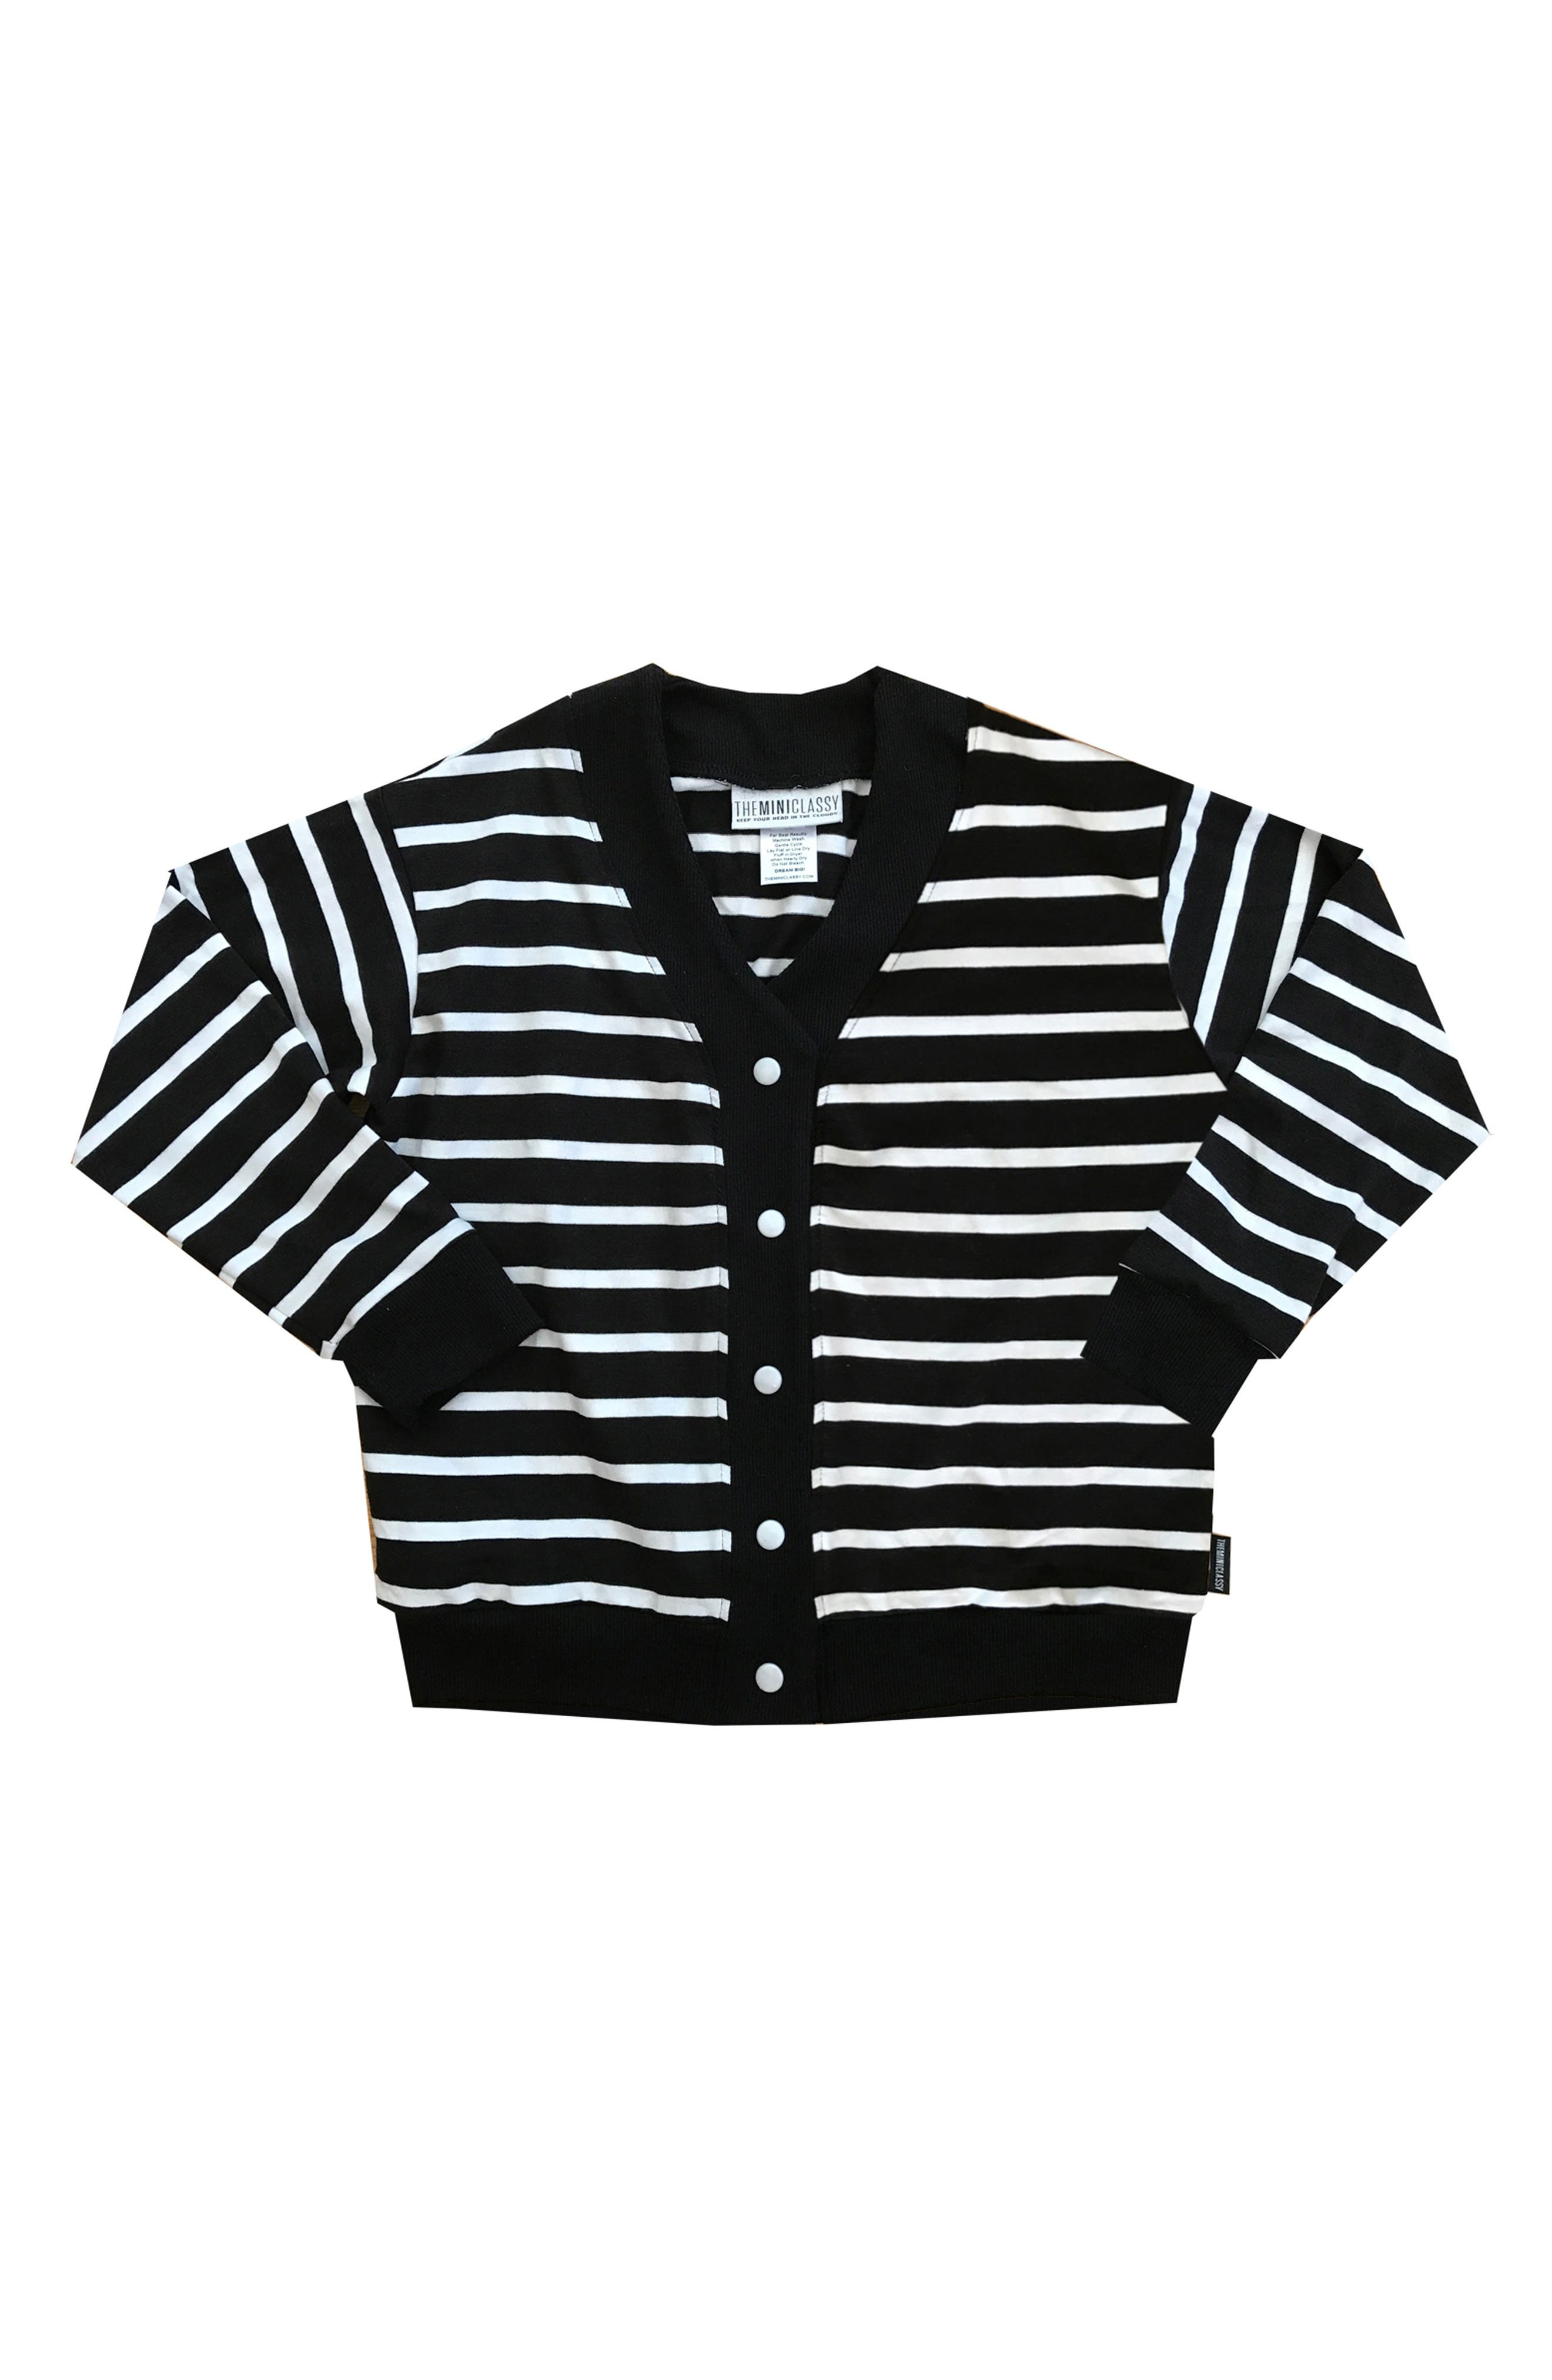 Main Image - theMINIclassy Stripe Cardigan Sweater (Toddler Boys & Little Boys)